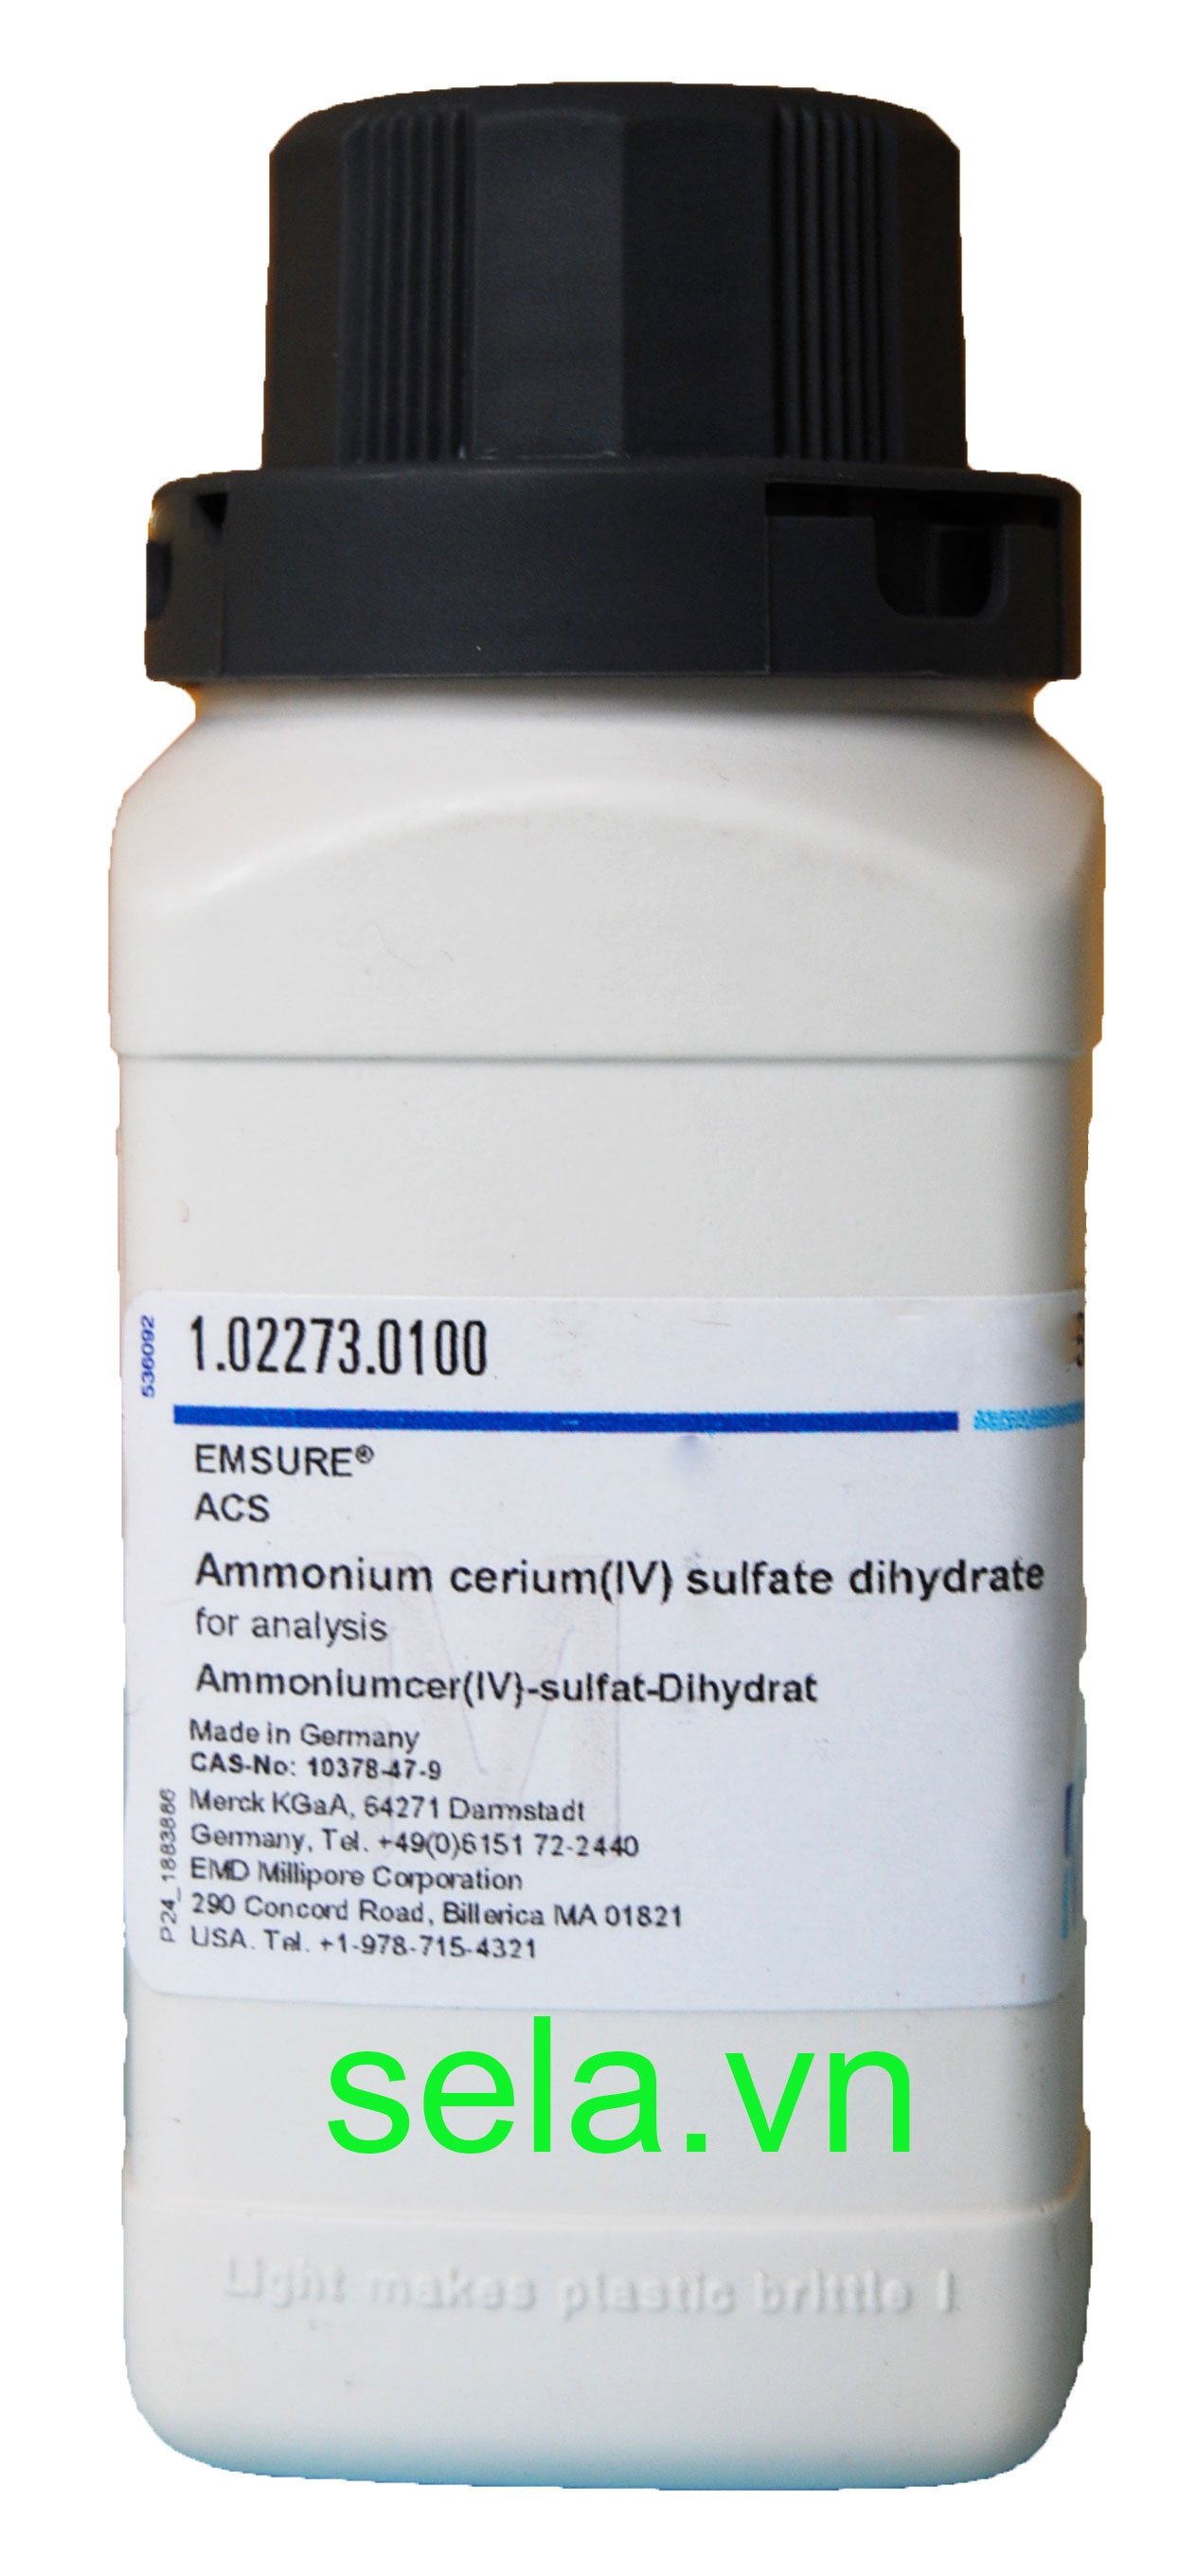 Ammonium cerium(IV) sulfate dihydrate for analysis EMSURE® ACS